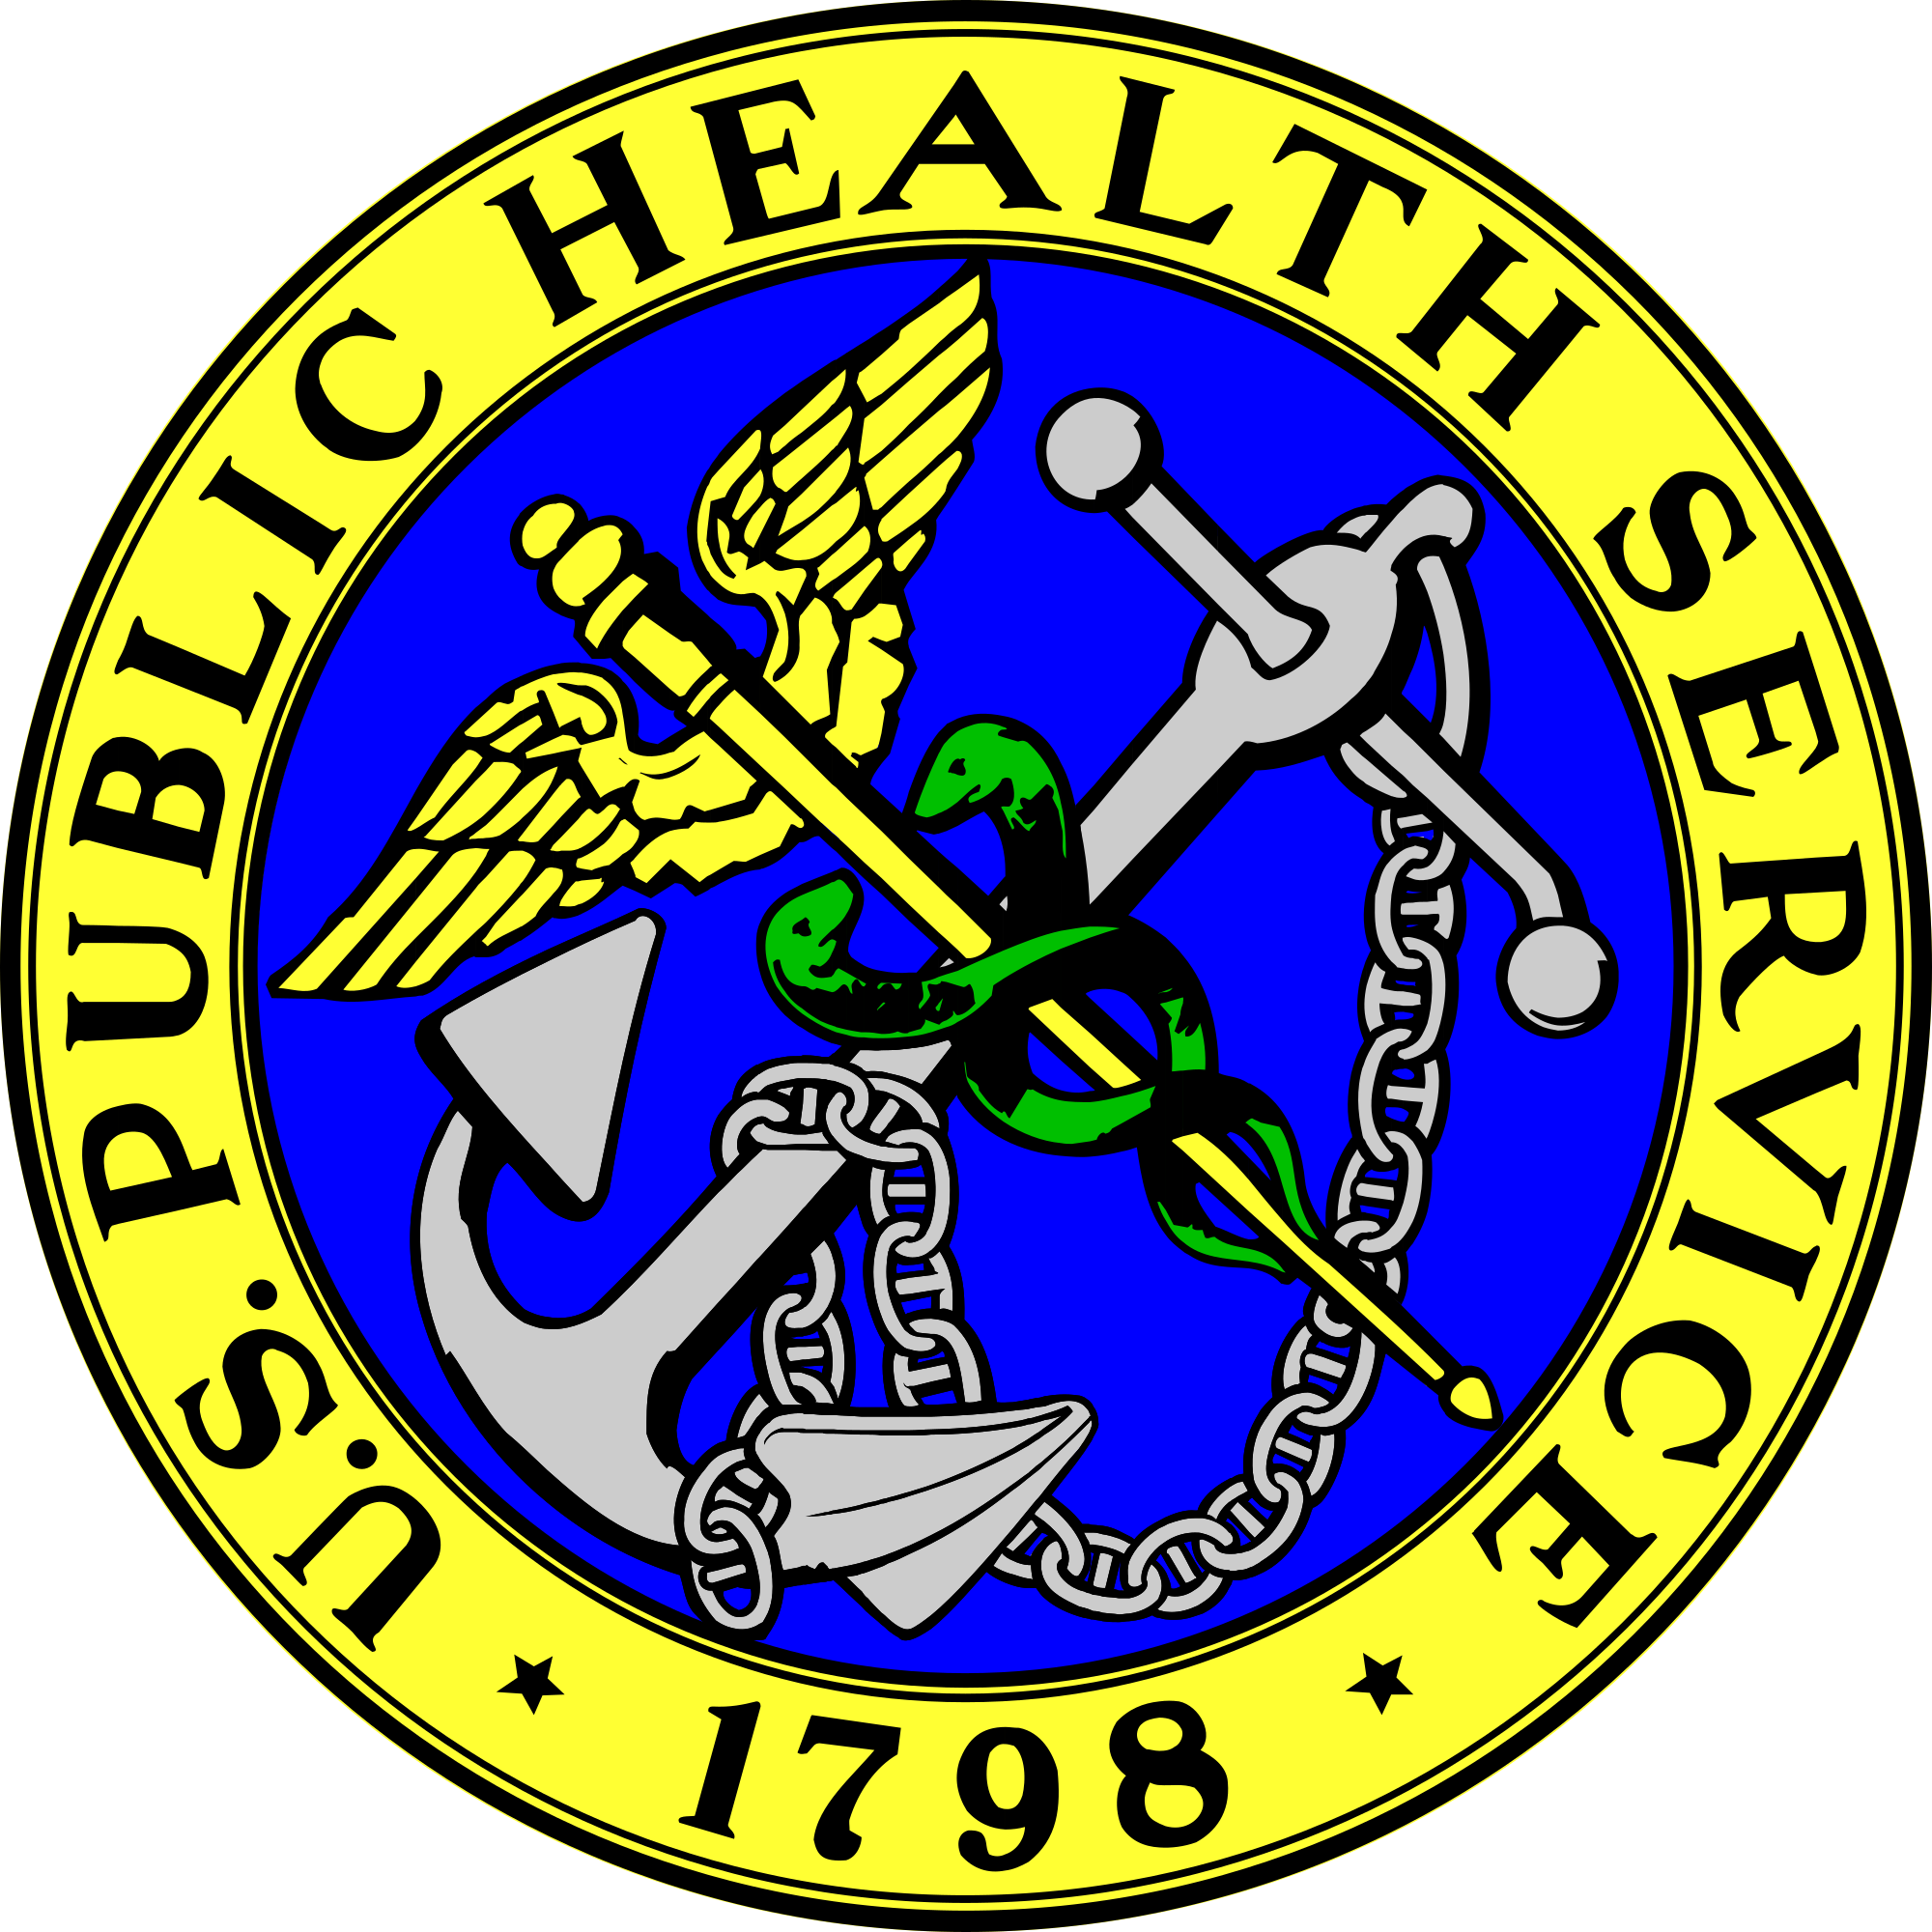 Share clipart public health Transparent pictures on F.